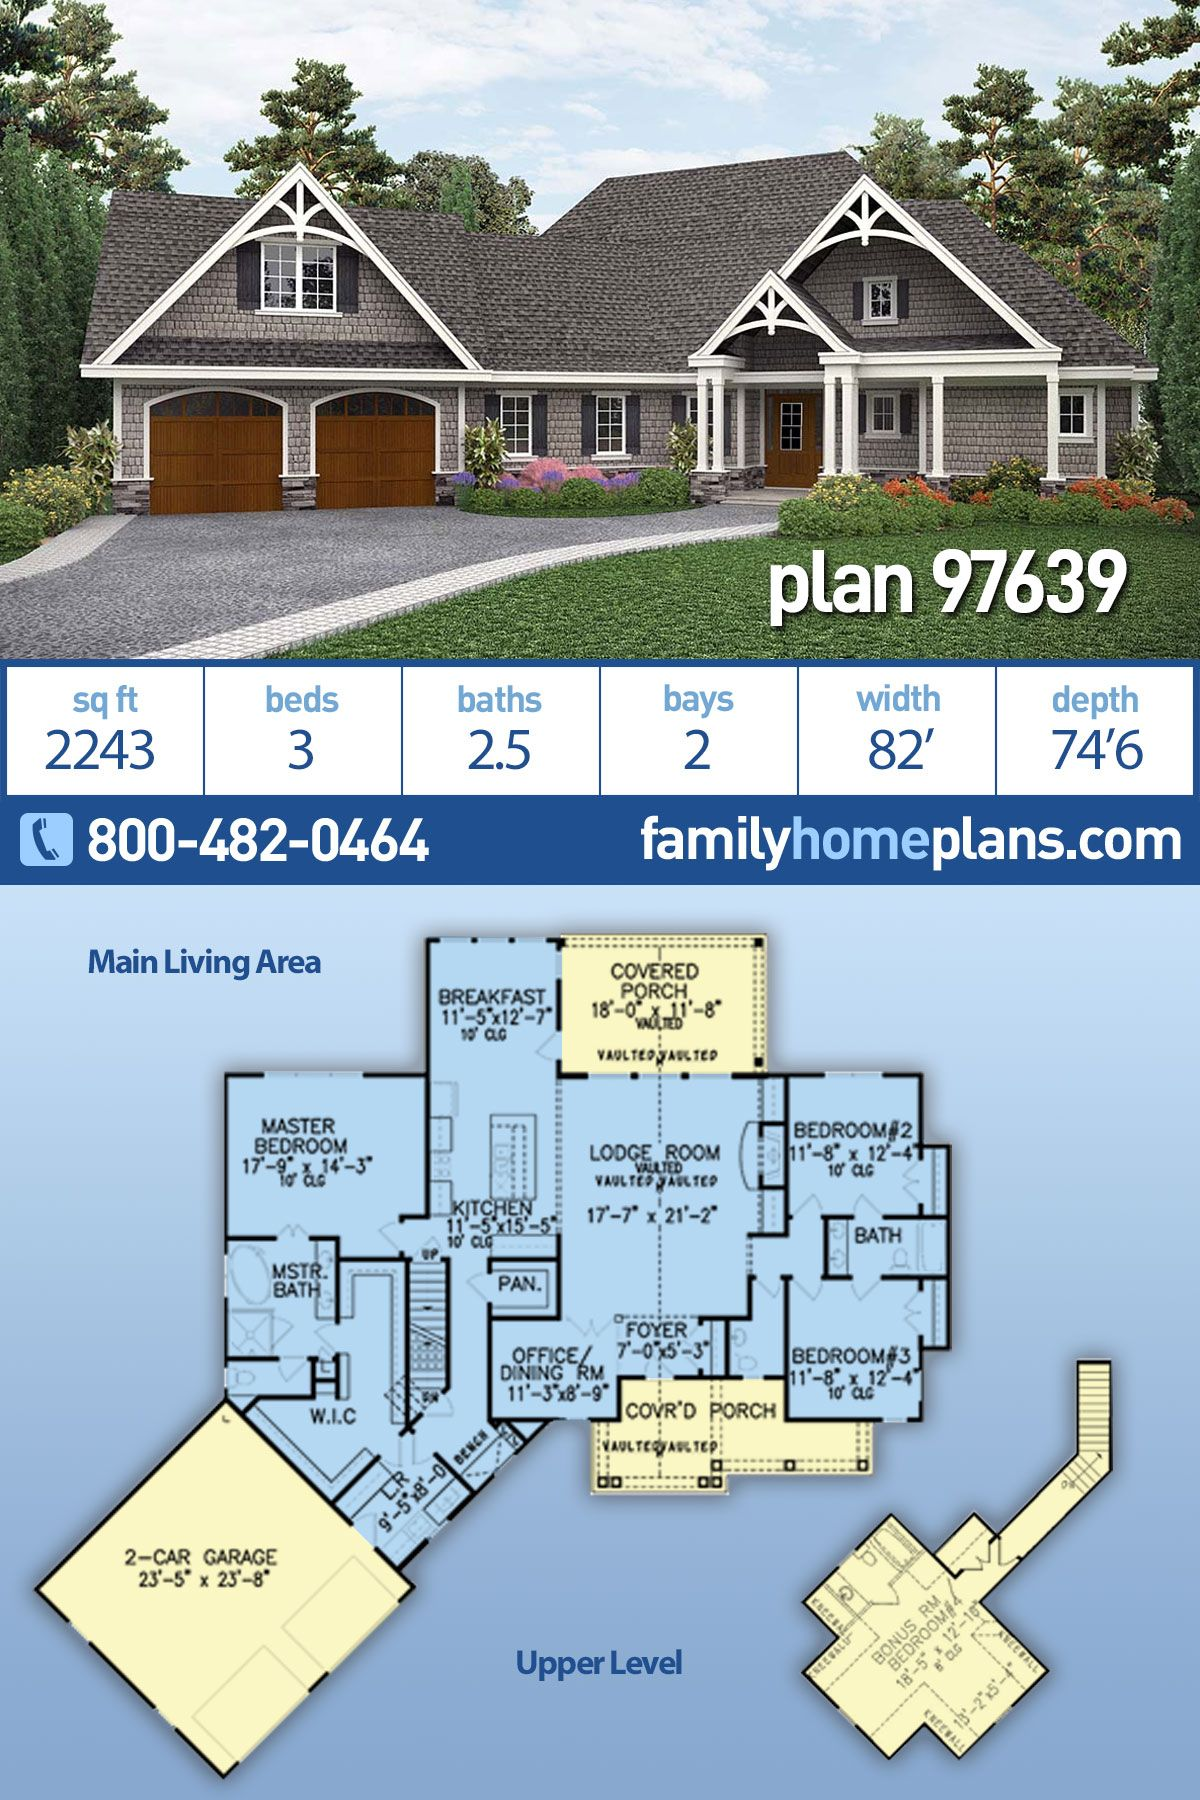 Ranch Style House Plan 97639 With 3 Bed 3 Bath 2 Car Garage Ranch Style House Plans Craftsman Style House Plans Ranch House Plans